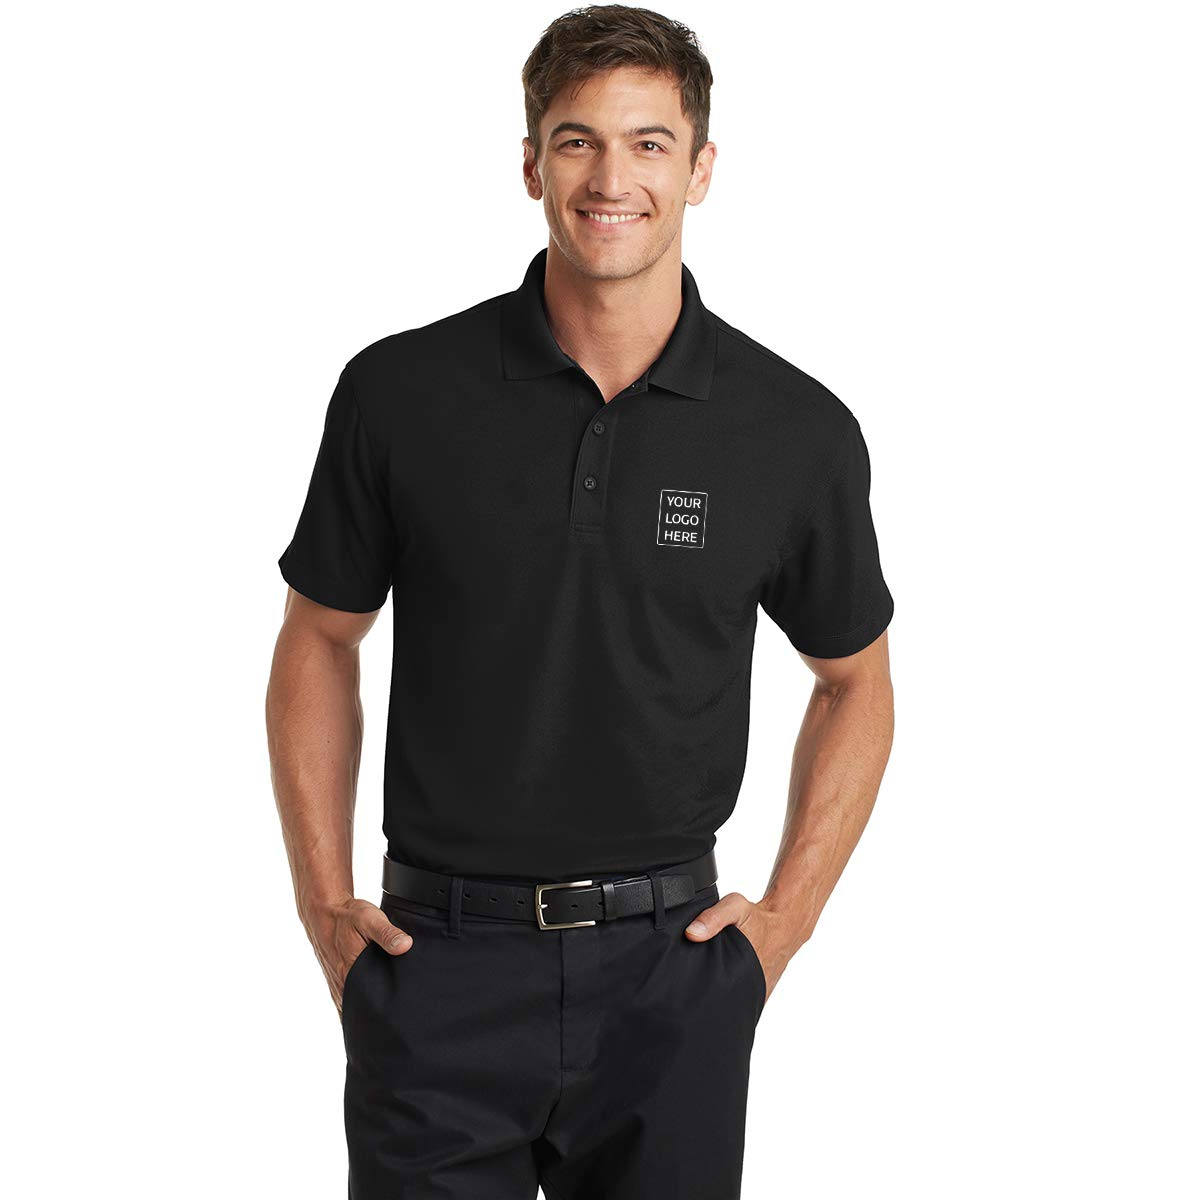 Promotional Product Your Logo Dry Zone Grid Polo 35.82 Each 6 Qty